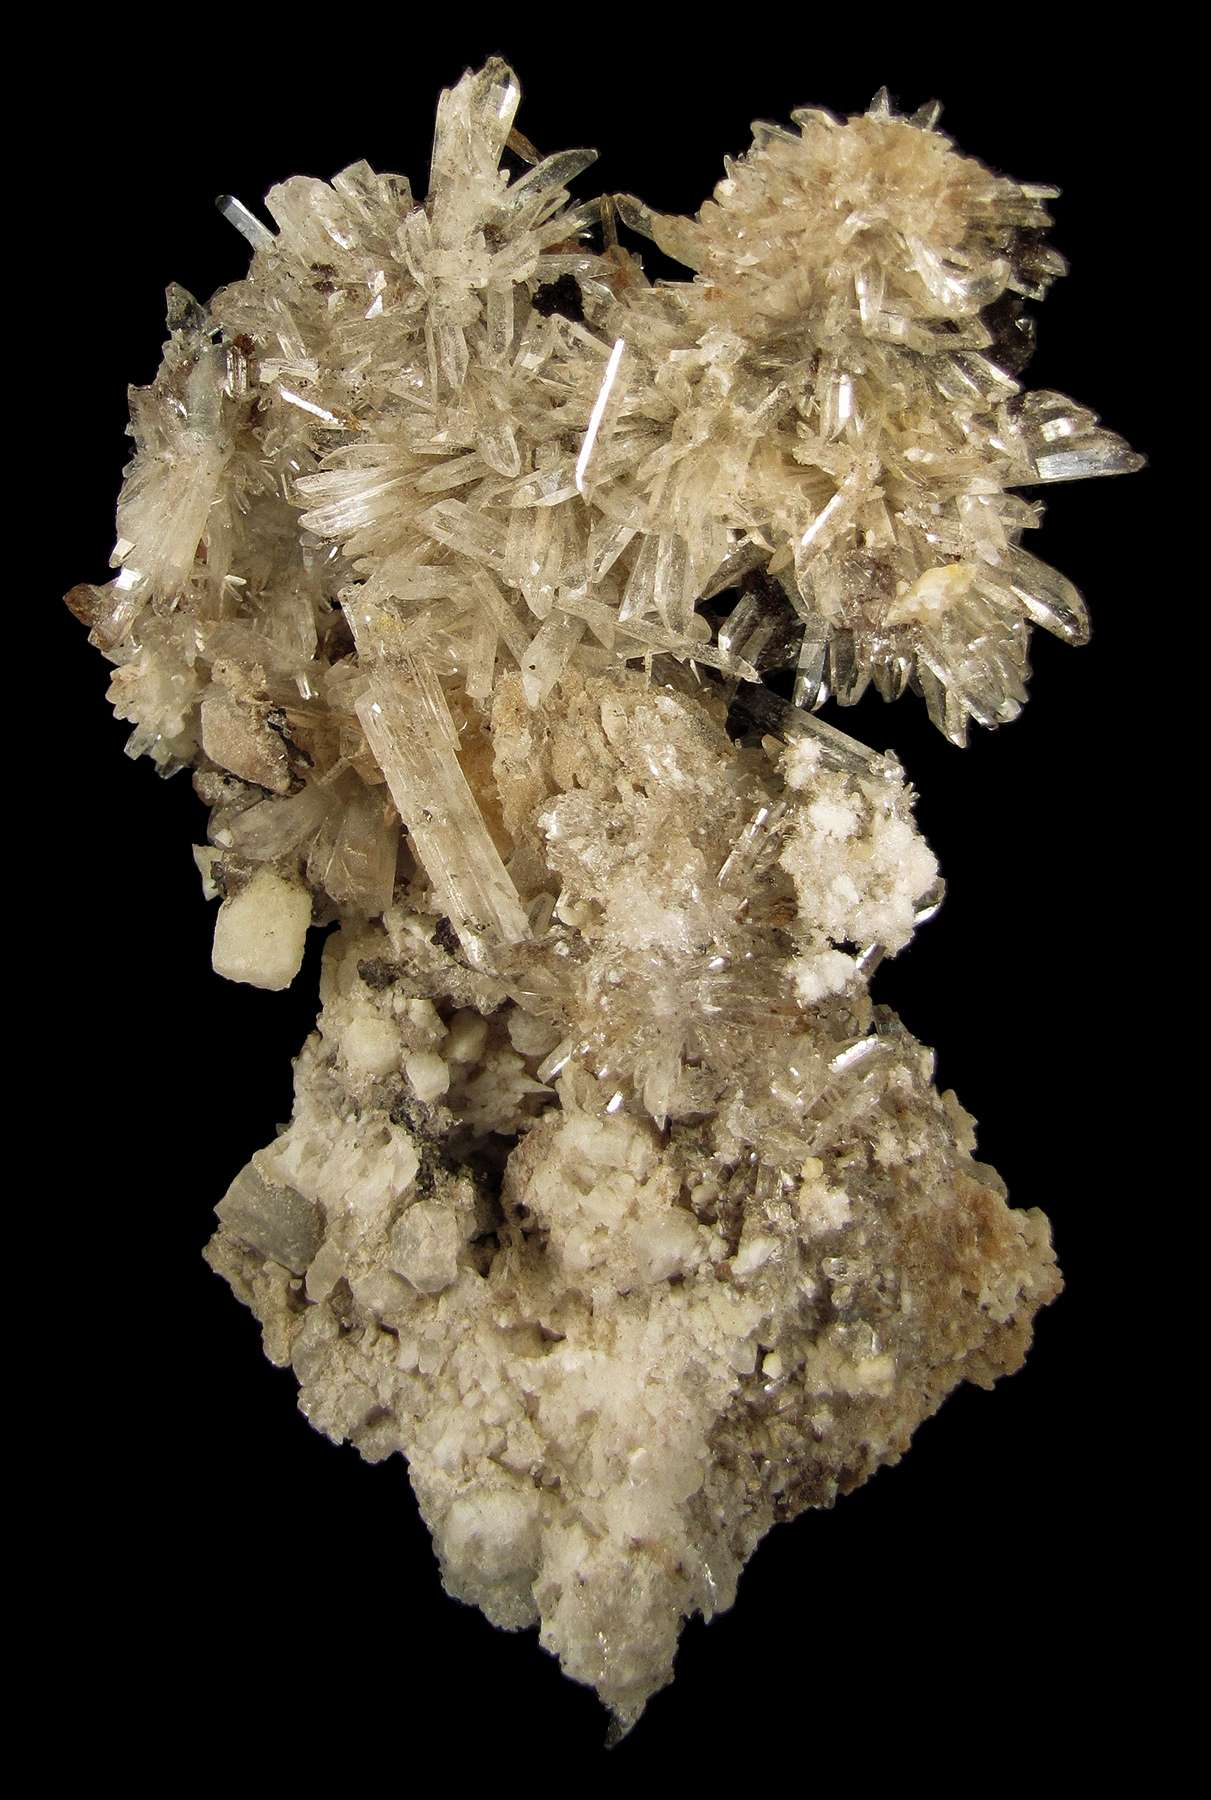 Bright glassy gemmy colorless crystals creedite 2 0 cm length abound